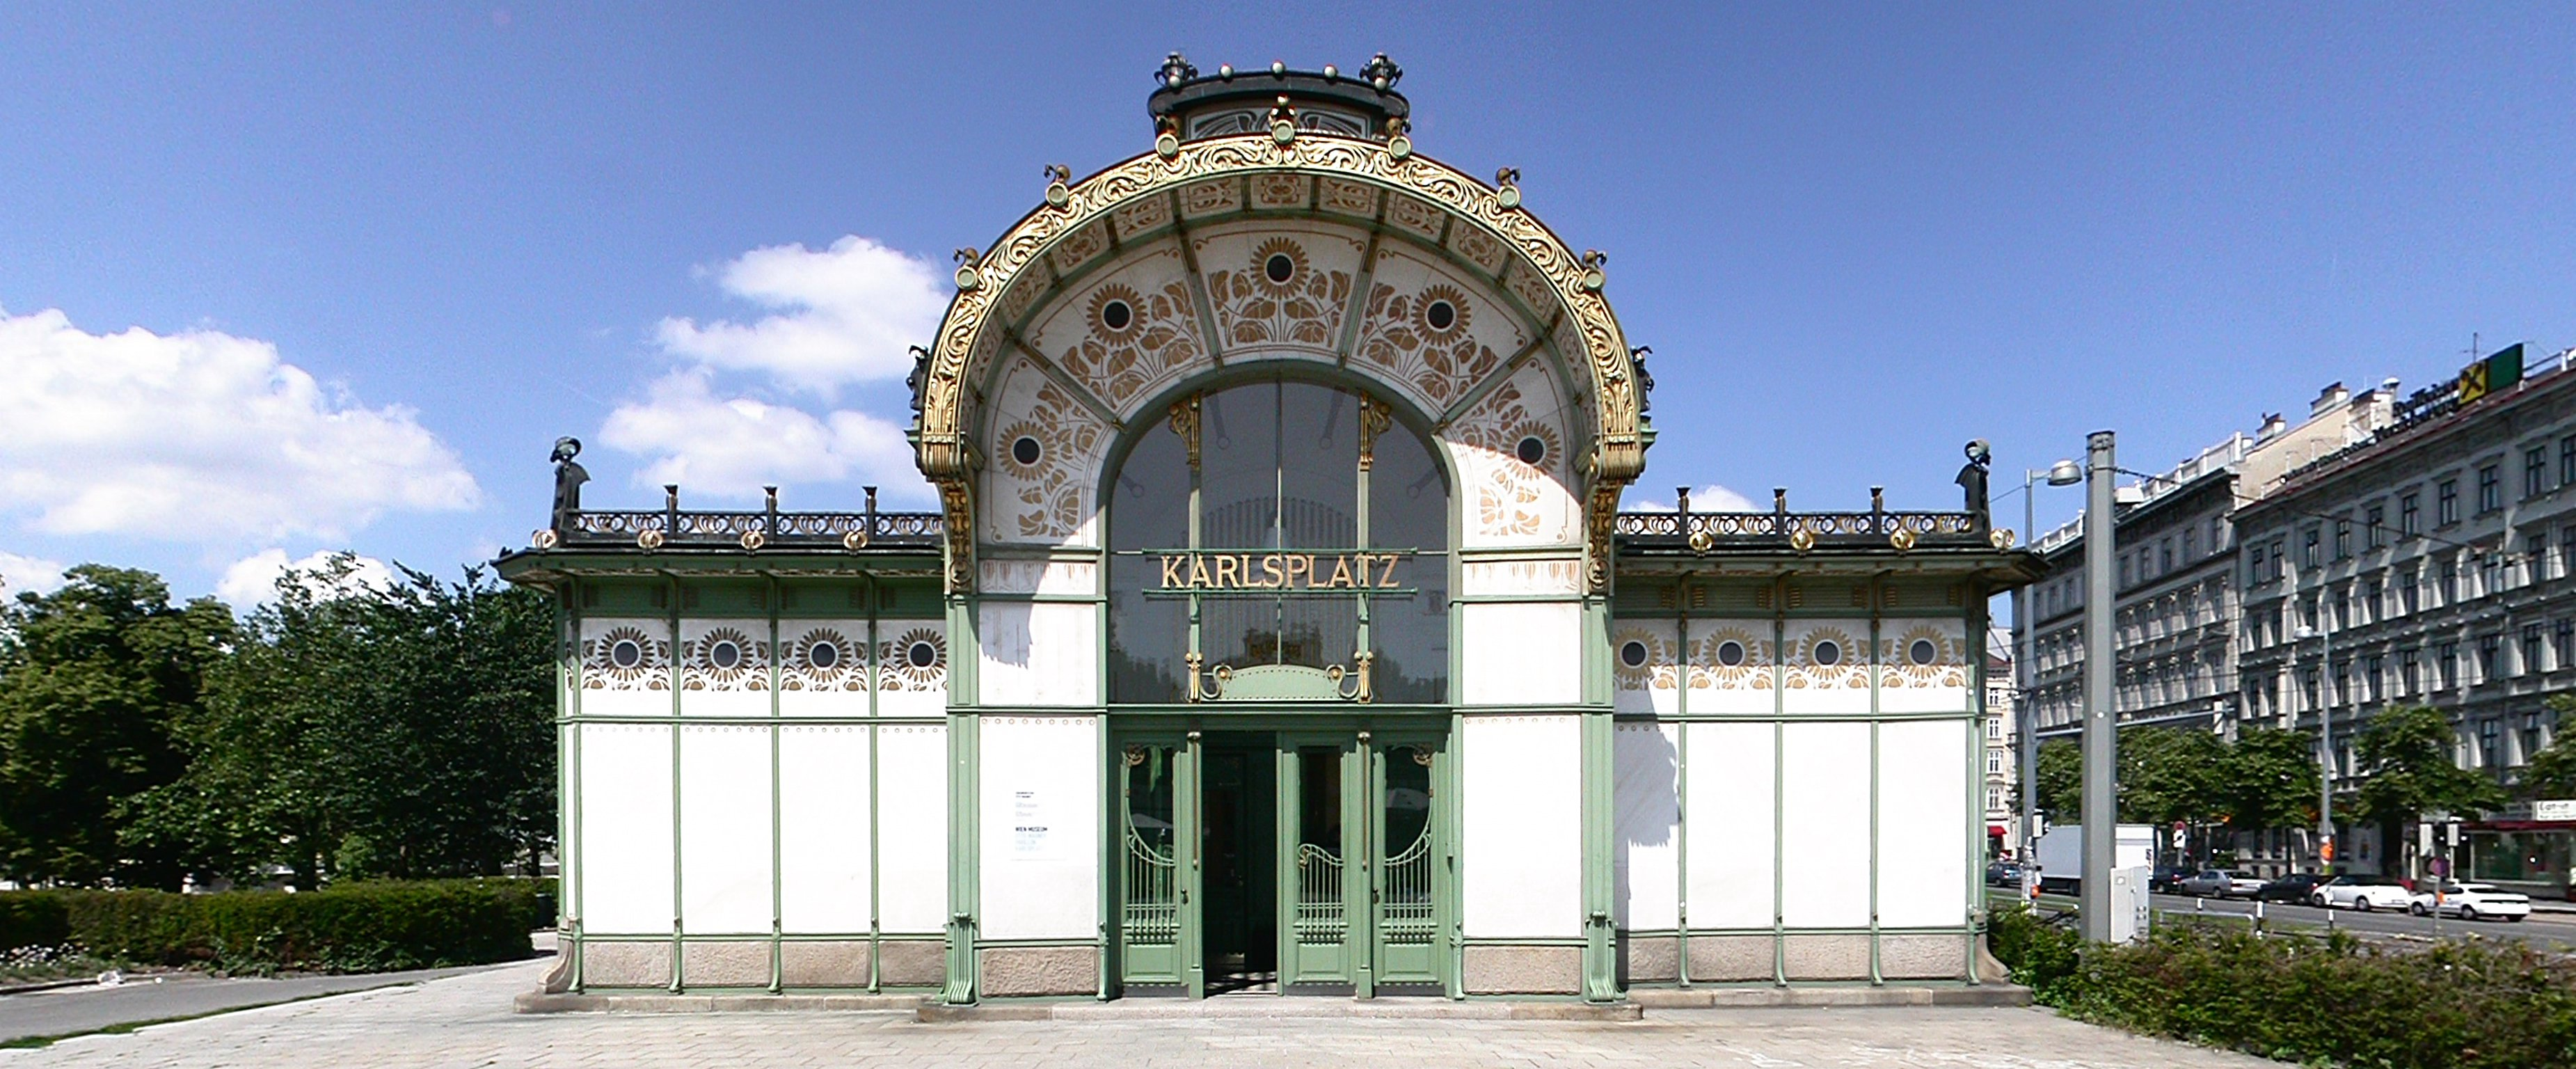 File:Otto-Wagner-Pavillon 110606.jpg - Wikimedia Commons